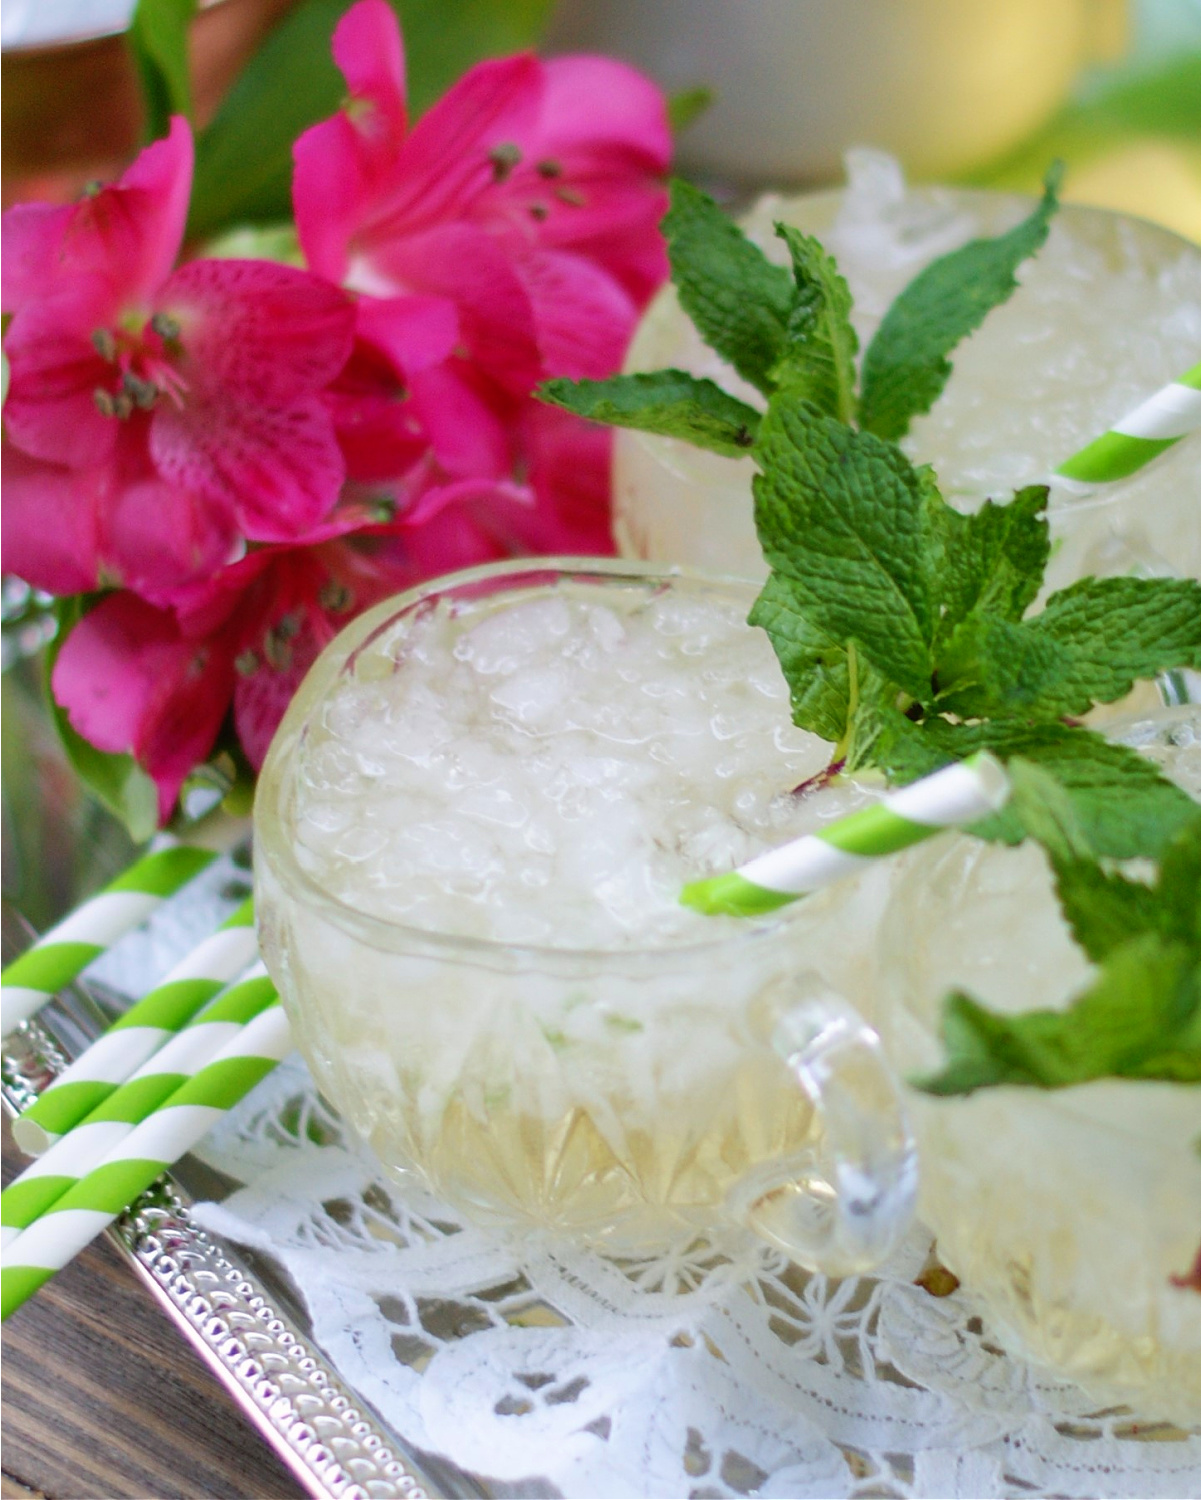 Champagne Julep Punch with mint garnish and striped straw for a derby party.